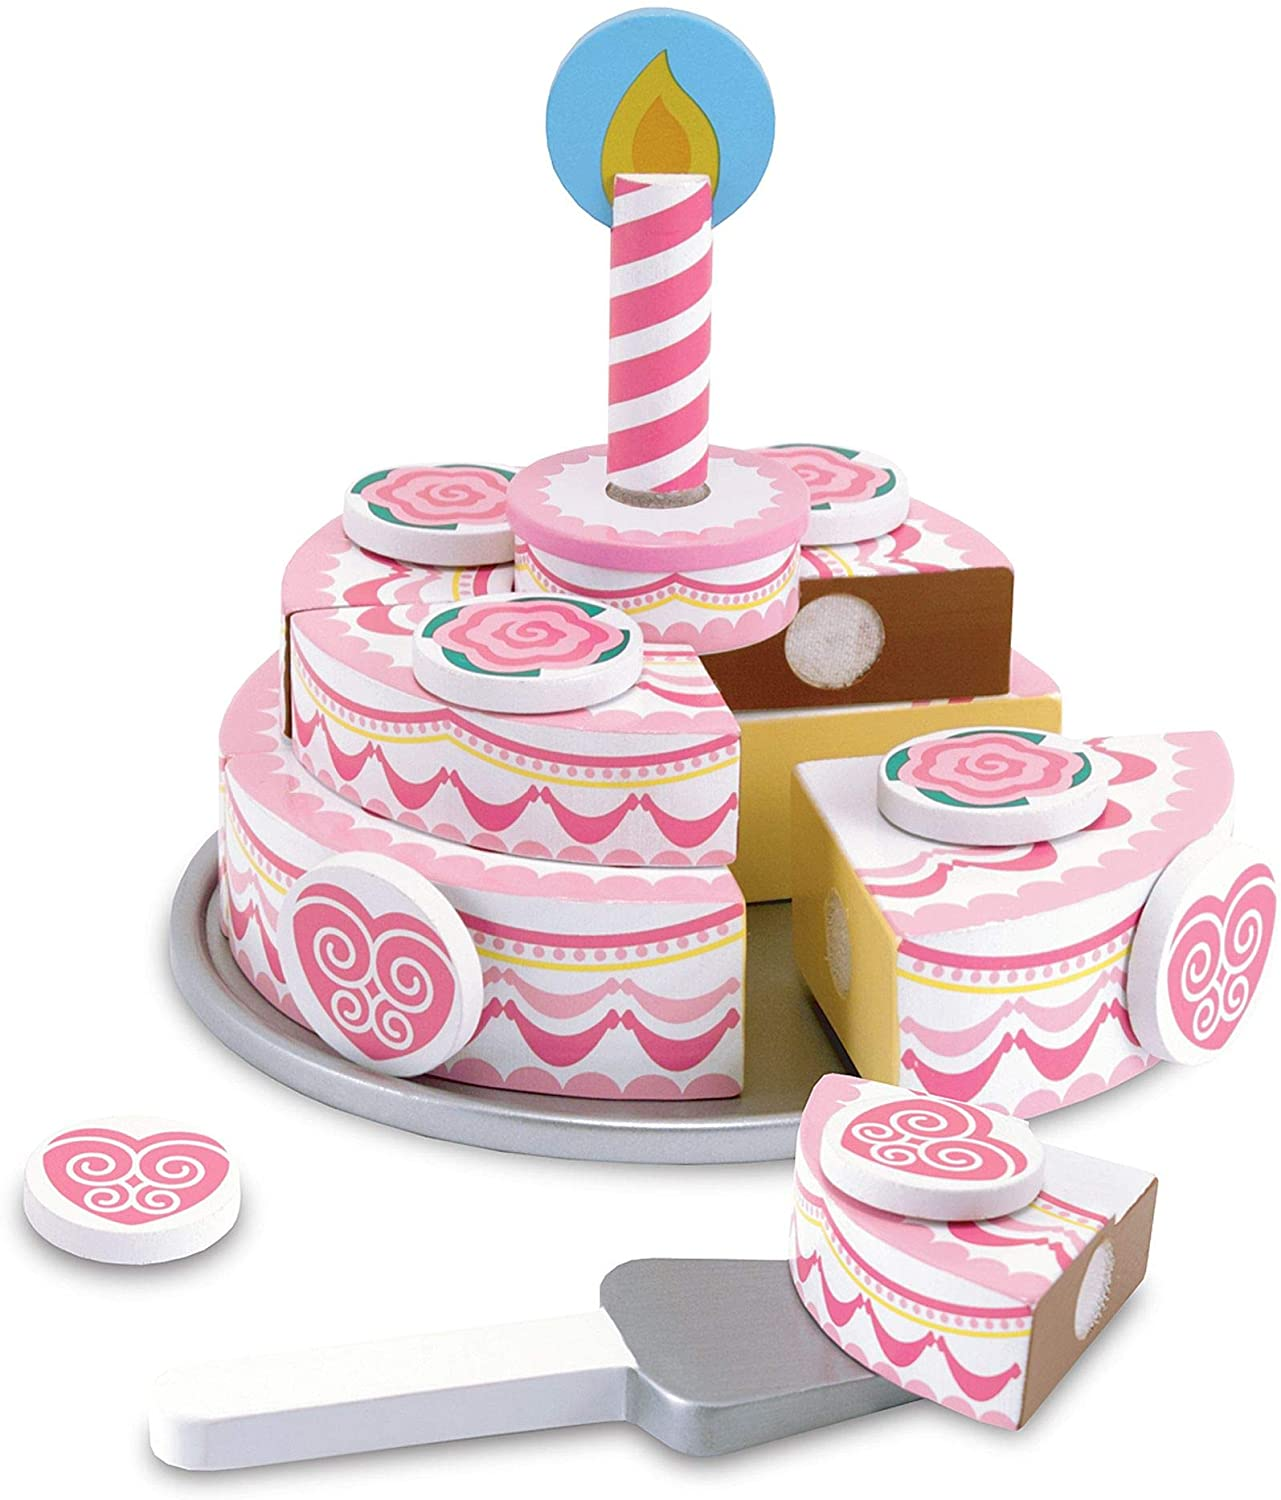 Astounding Melissa Doug Triple Layer Party Cake Wooden Play Food Tiered Funny Birthday Cards Online Alyptdamsfinfo